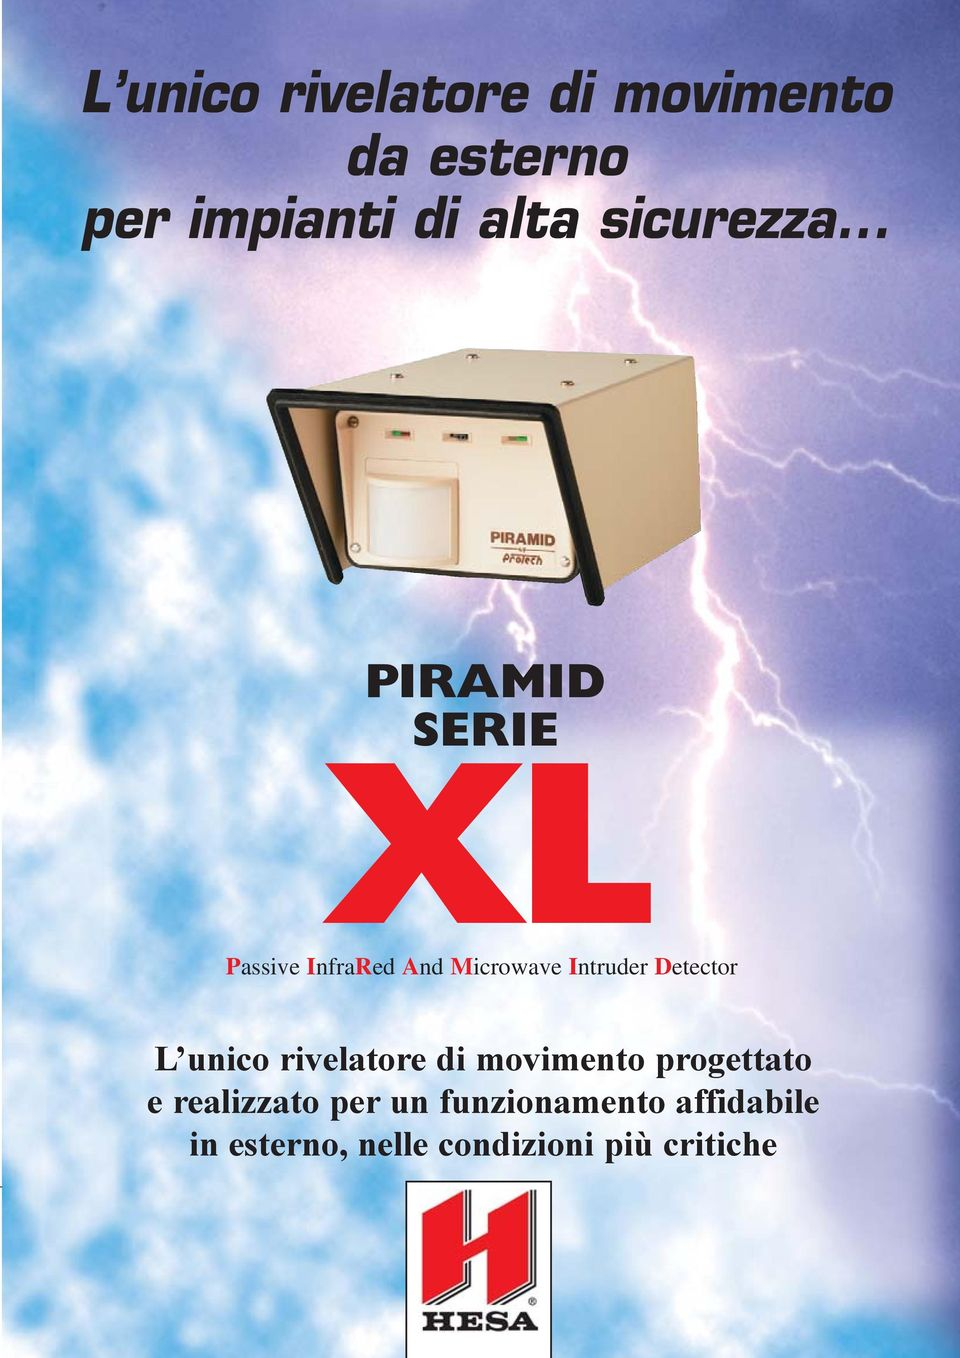 .. PIRAMID SERIE XL Passive InfraRed And Microwave Intruder